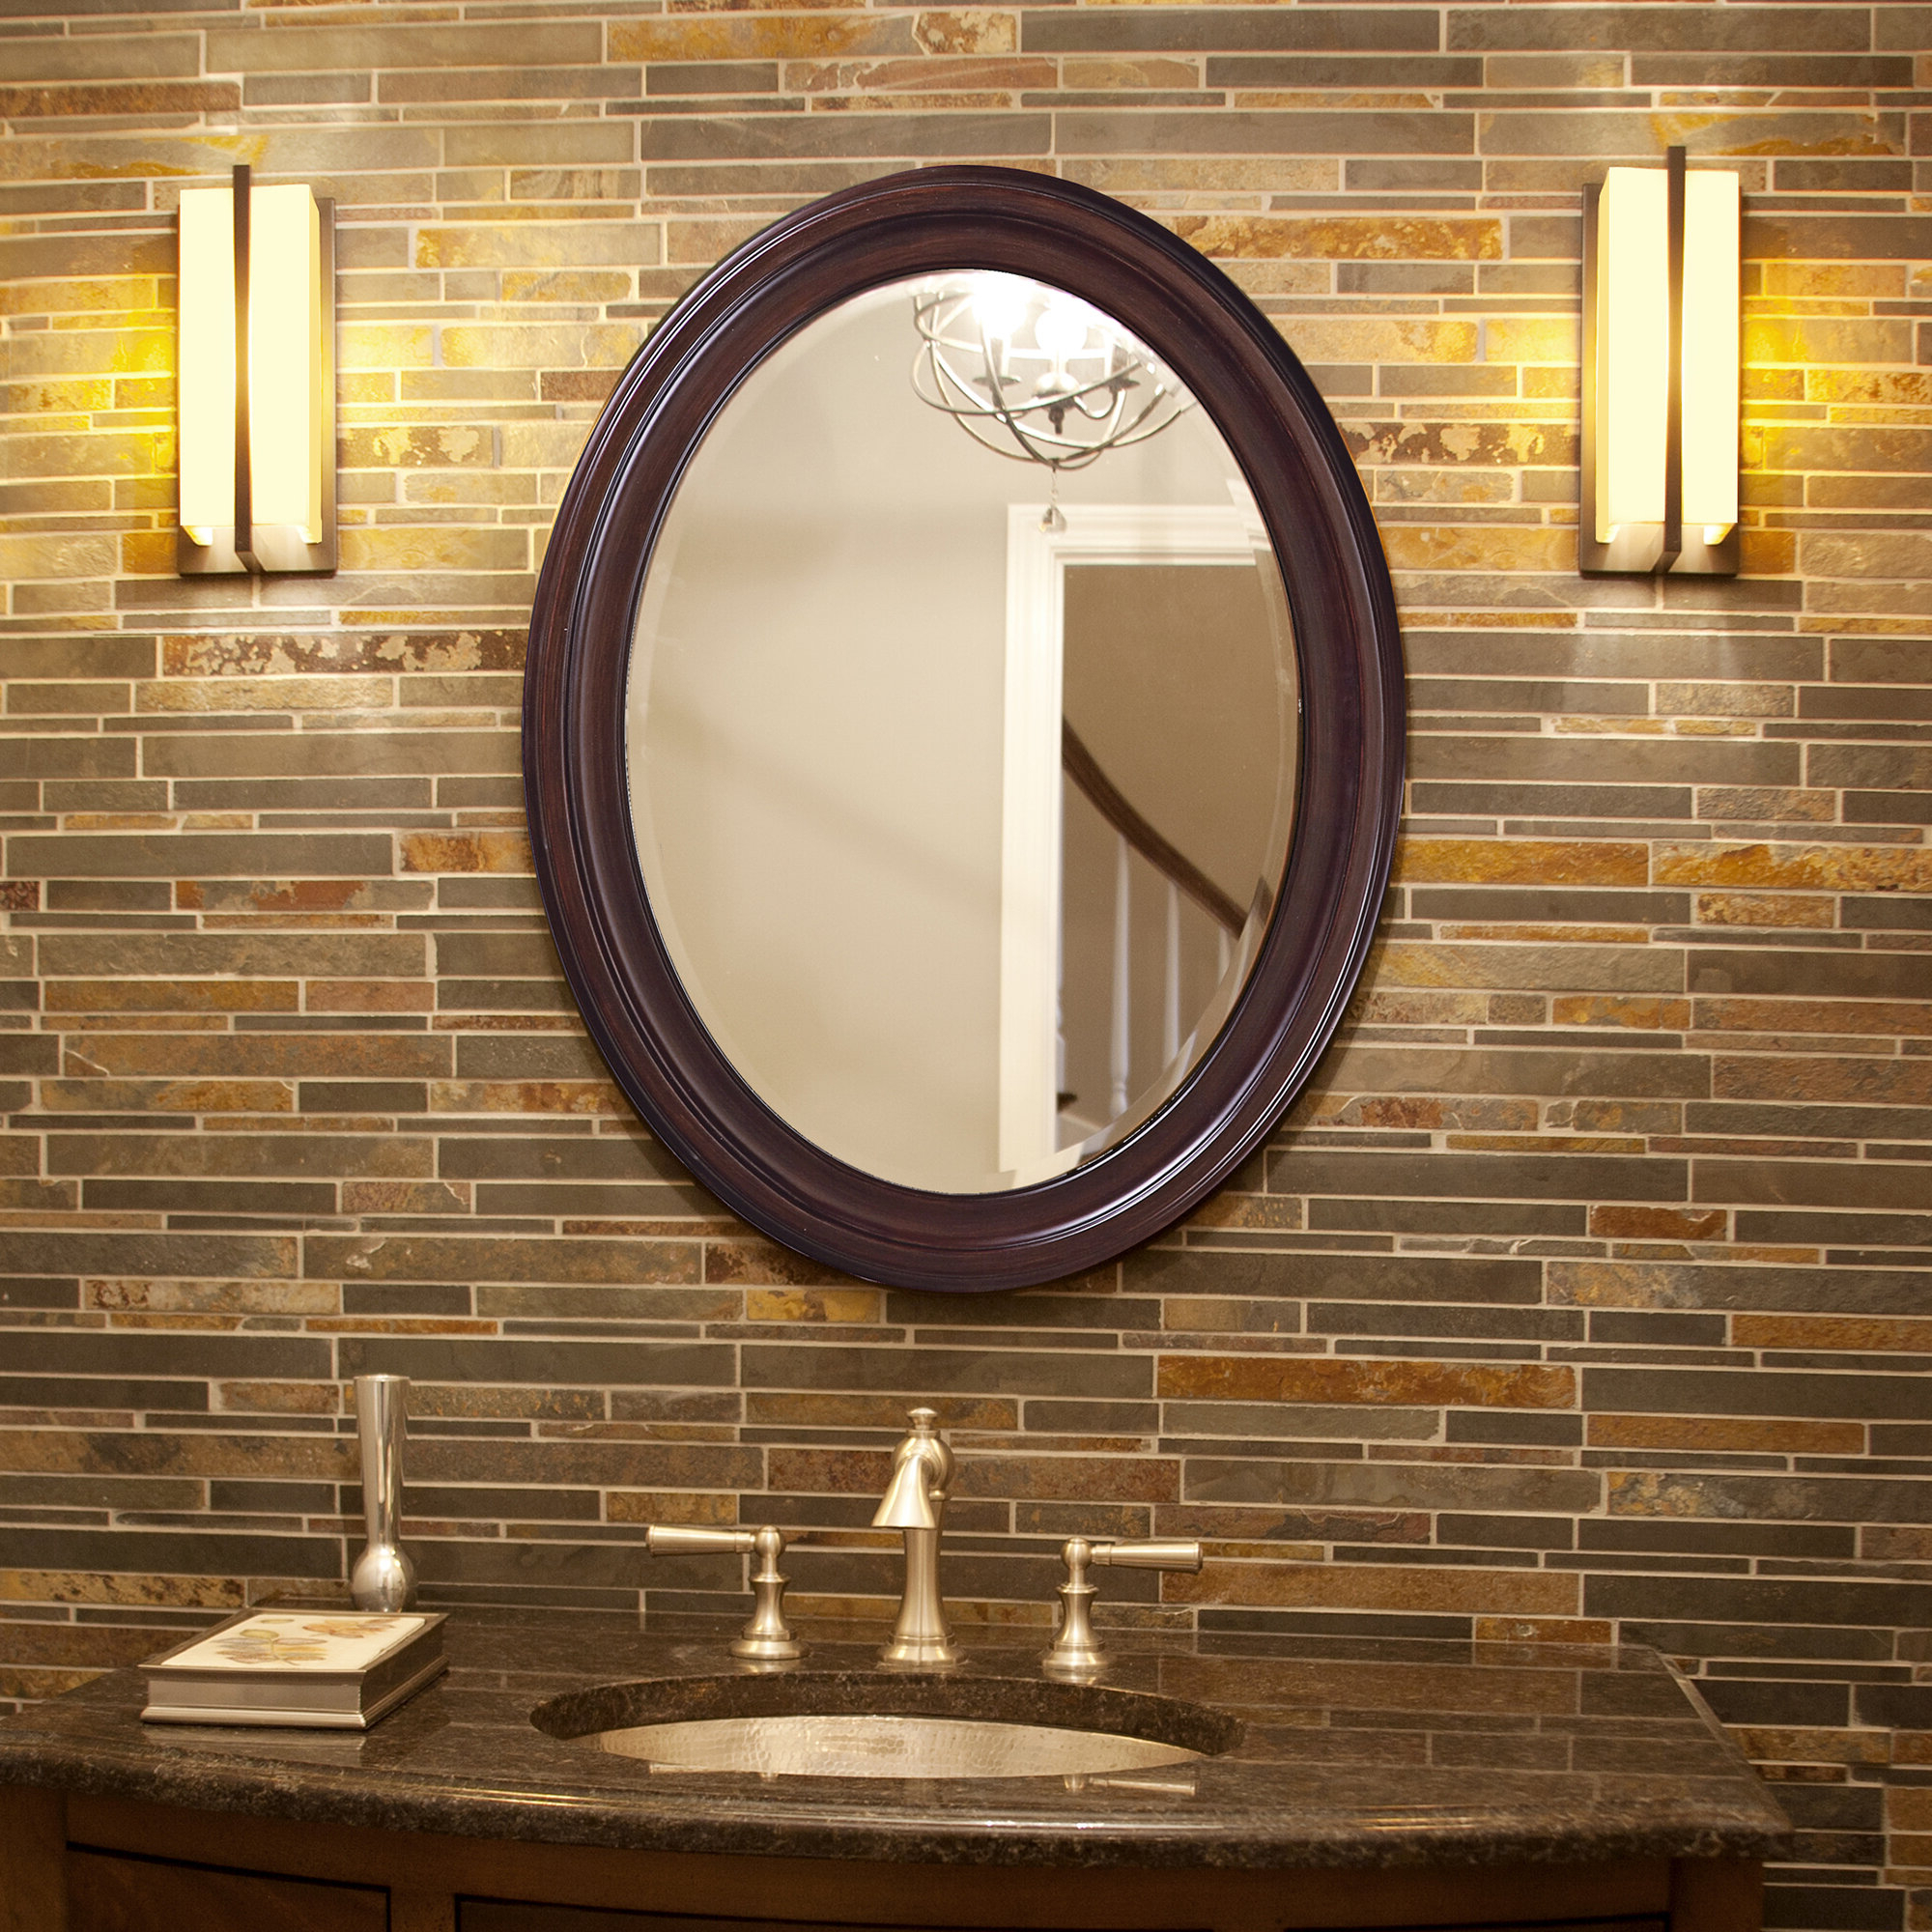 Pfister Oval Wood Wall Mirrors Intended For Popular Andover Mills Pfister Oval Wood Wall Mirror (View 5 of 20)